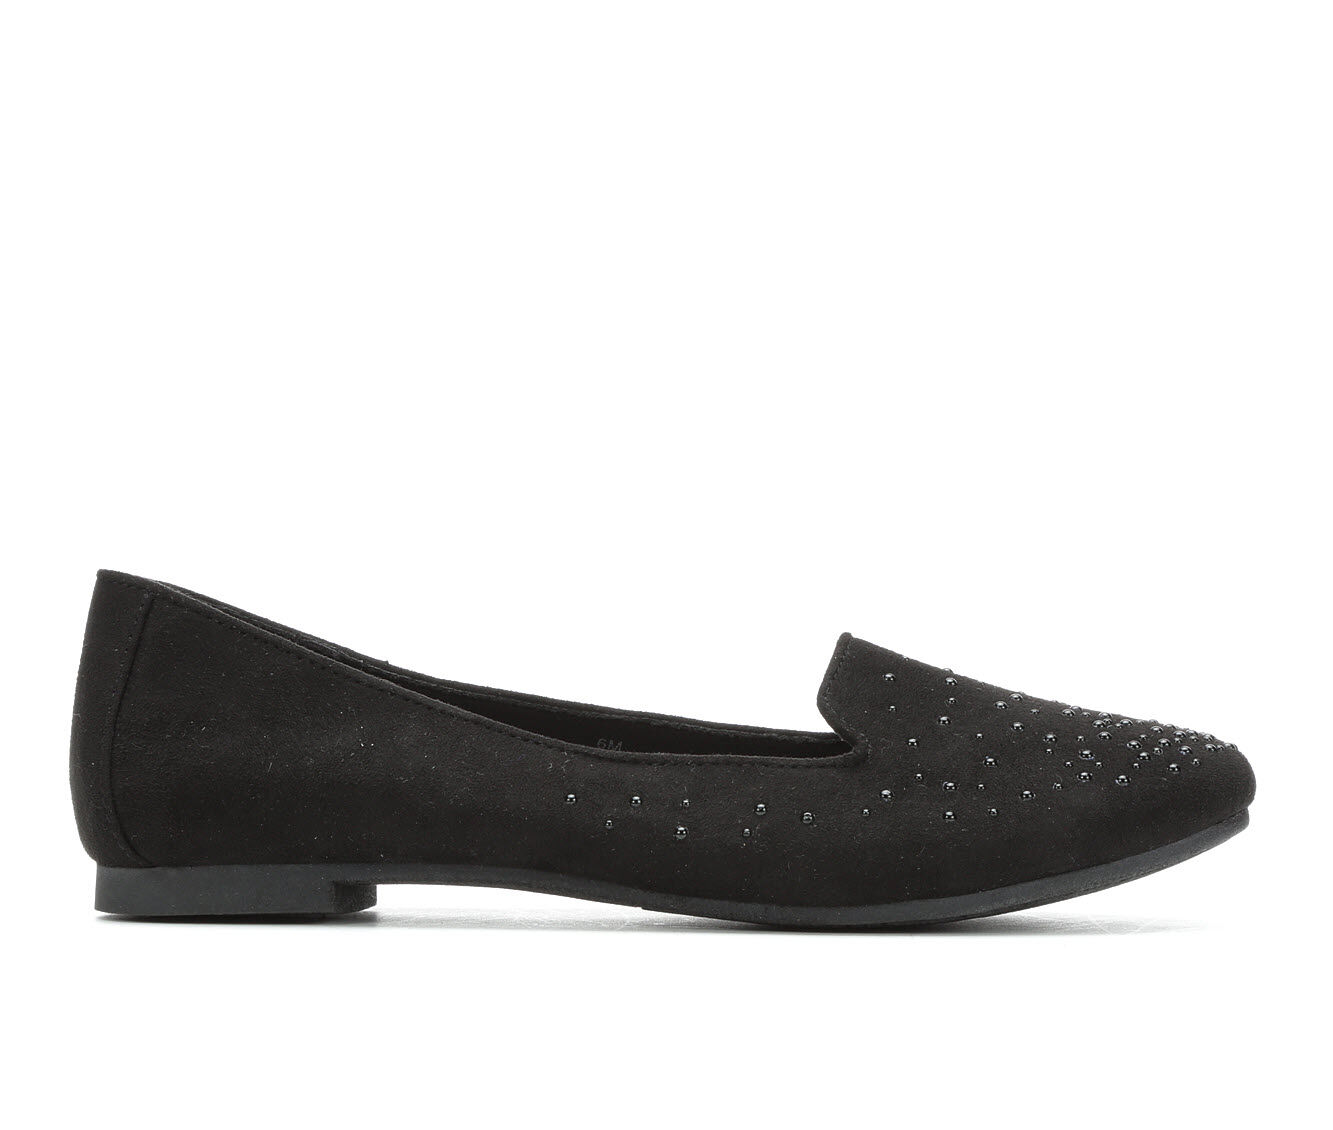 shop authentic new arrivals Women's Y-Not Hillary Flats Black